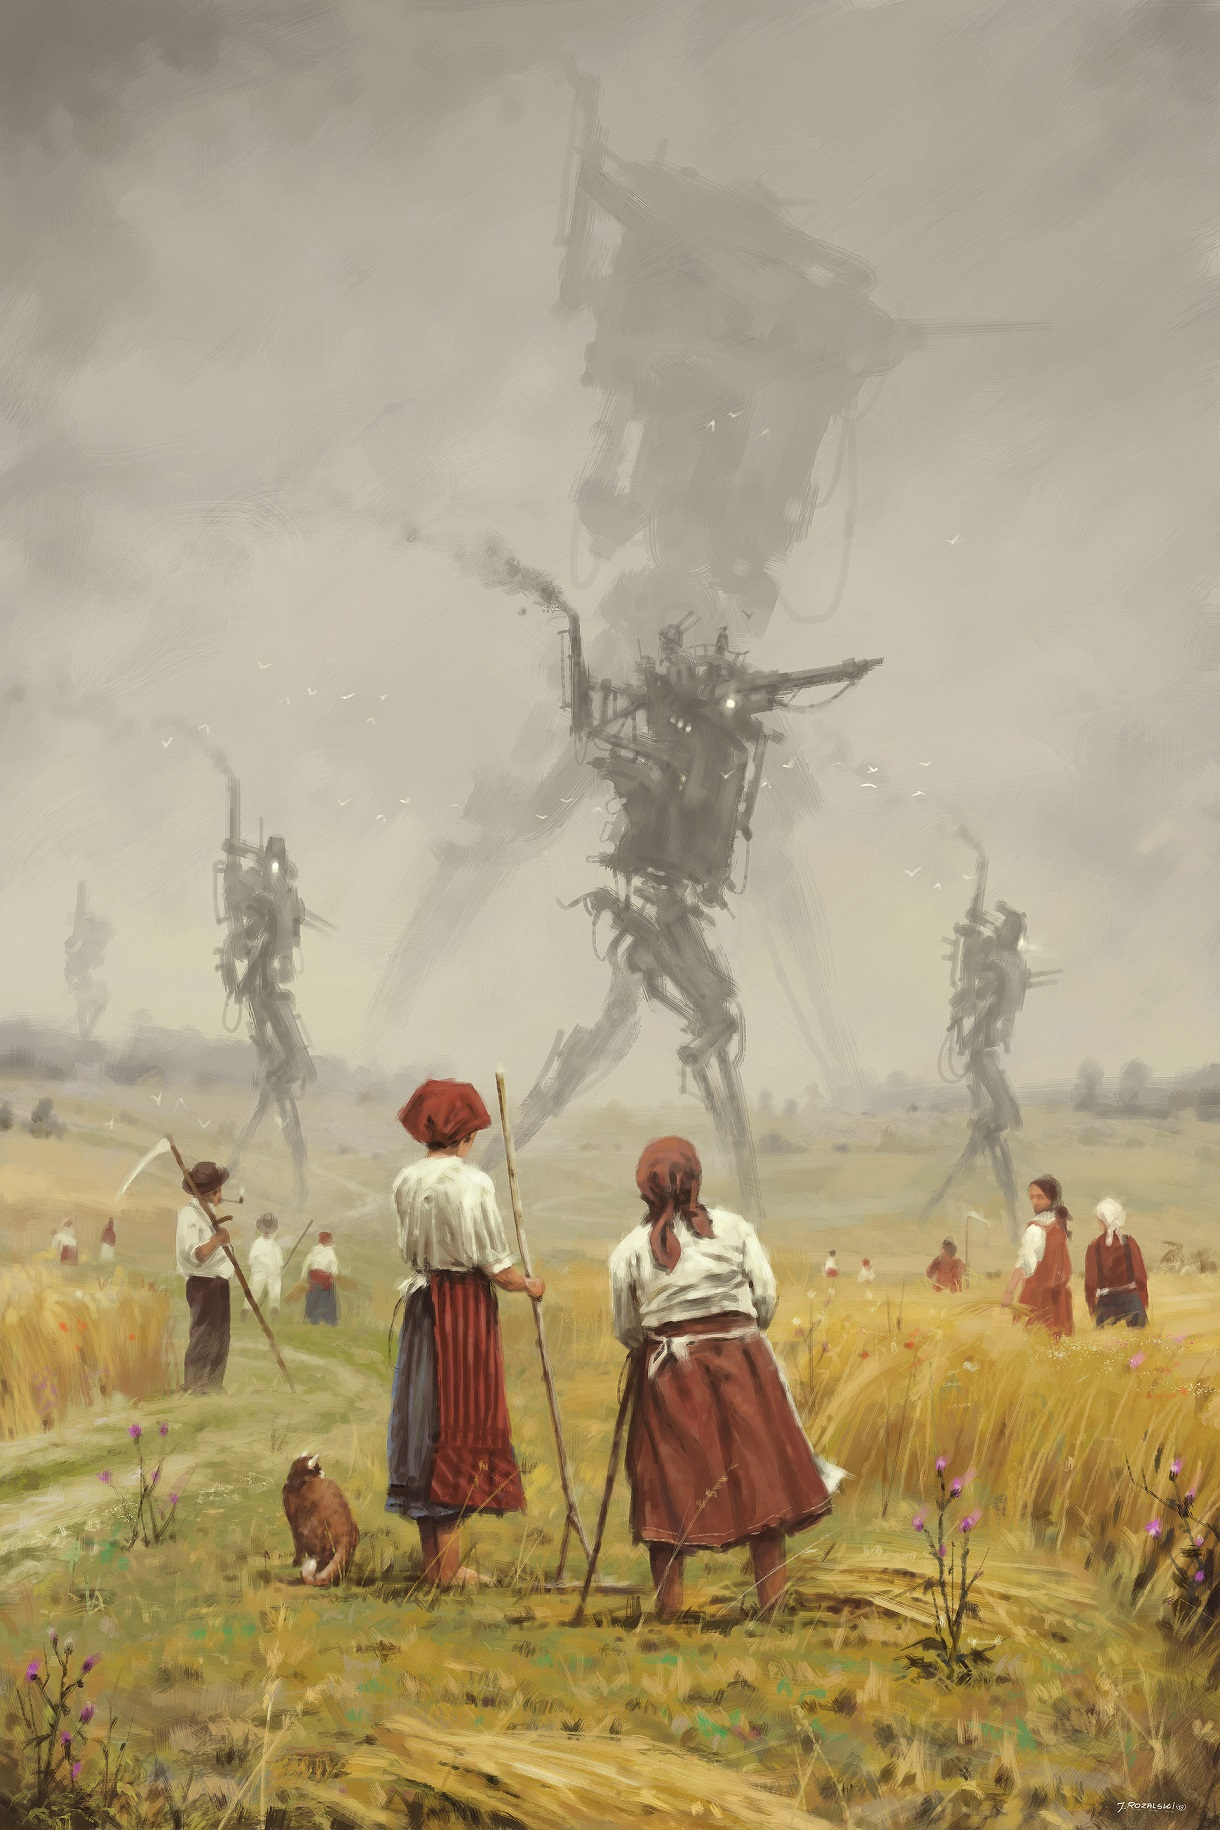 jakub-rozalski-1920-the-march-of-the-iron-scarecrows.jpg